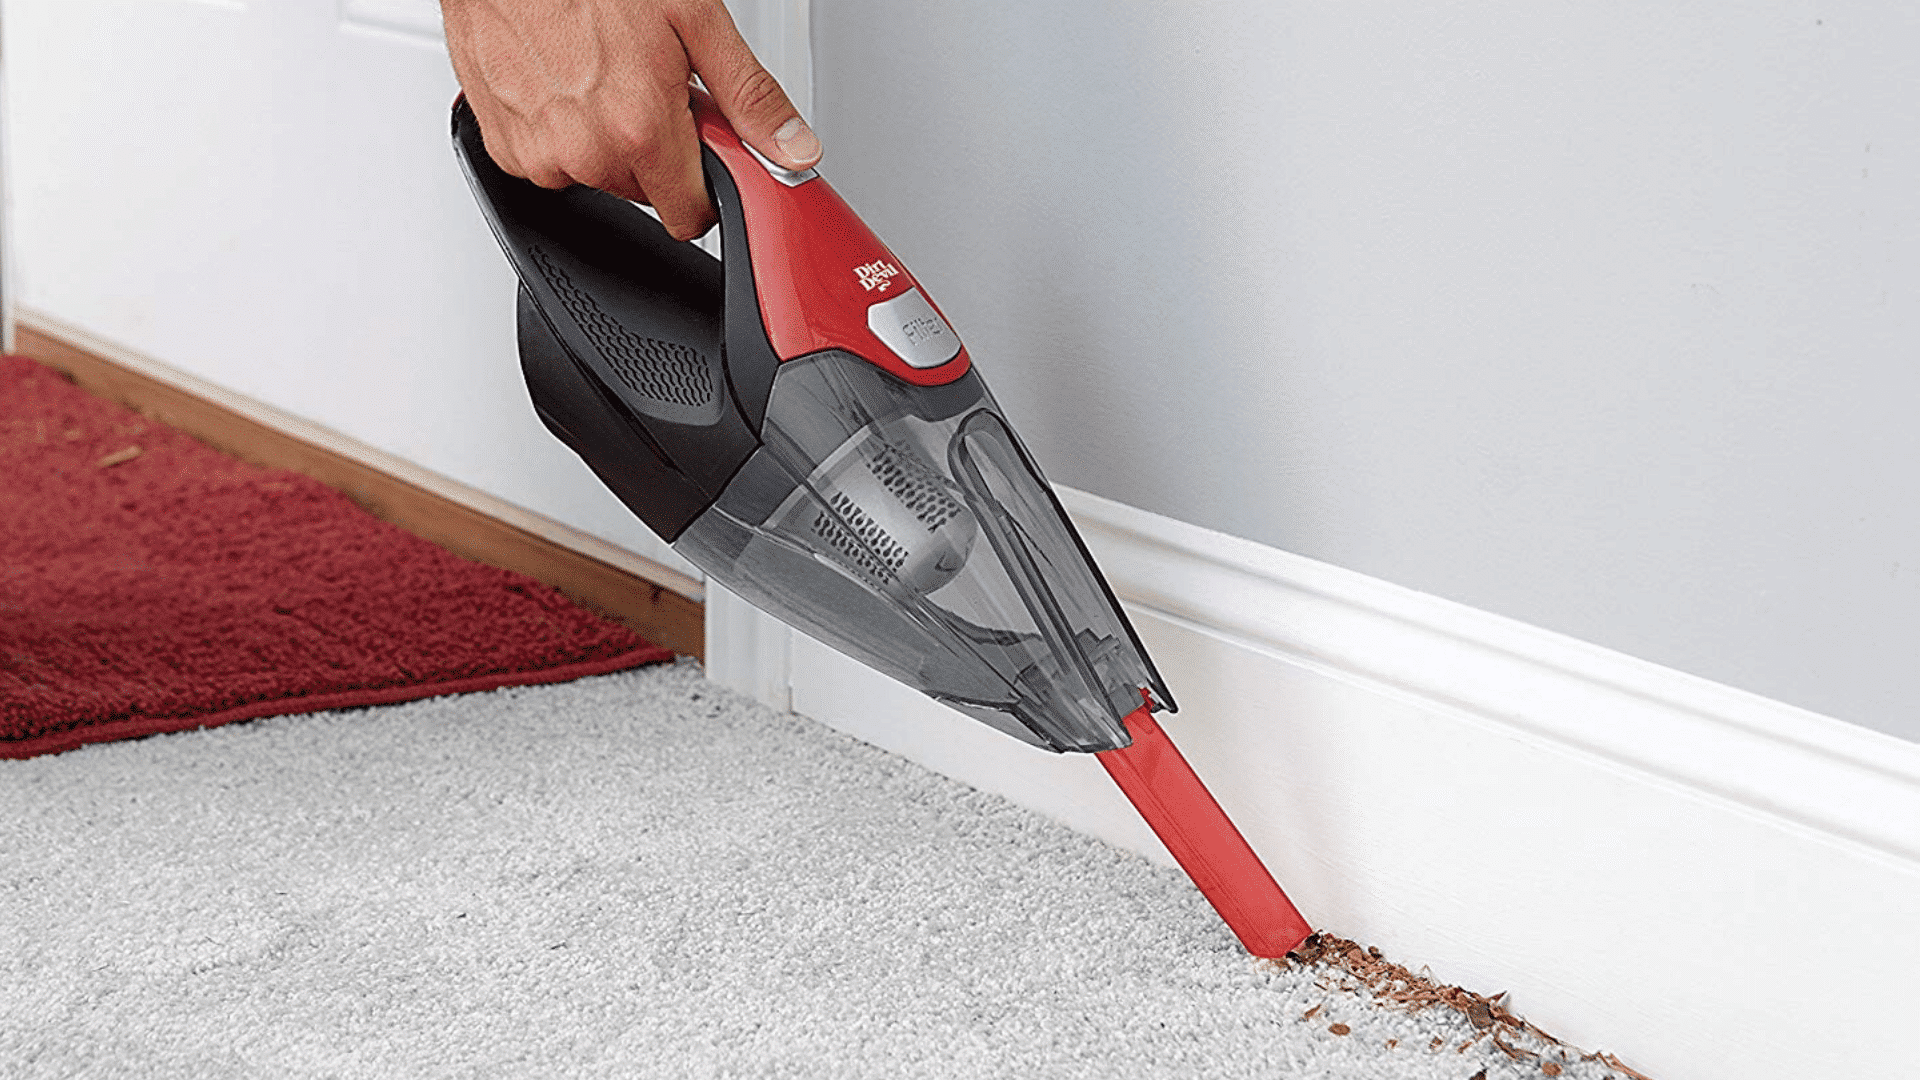 picture of Dirt Devil Plus 16V Quick Flip Pro Cordless 16 Volt Lithium Ion Bagless Handheld Vacuum Cleaner BD30025B being used to clean corner